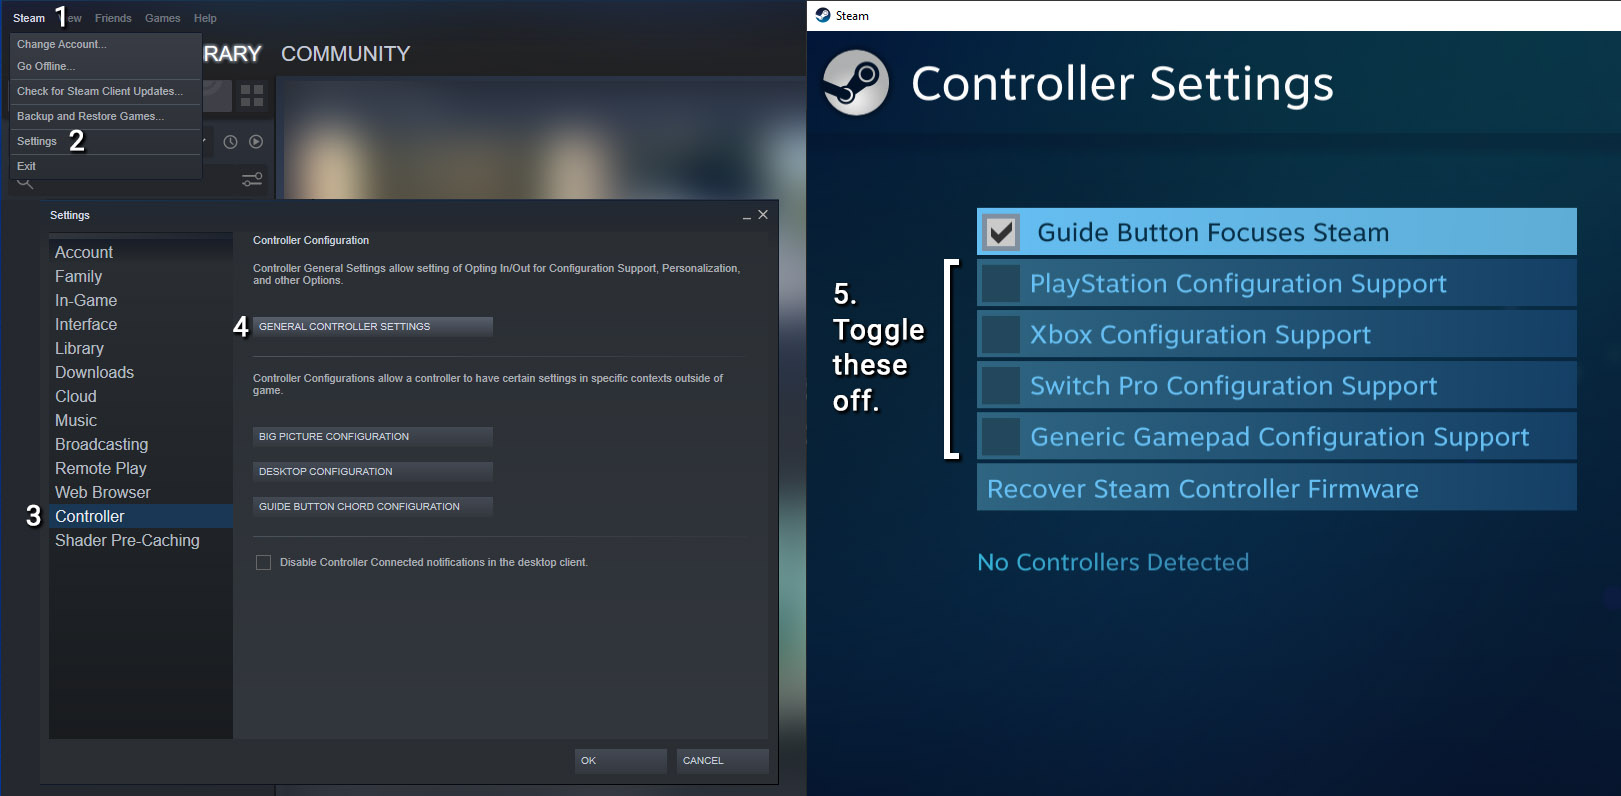 How to disable Steam controller overrides